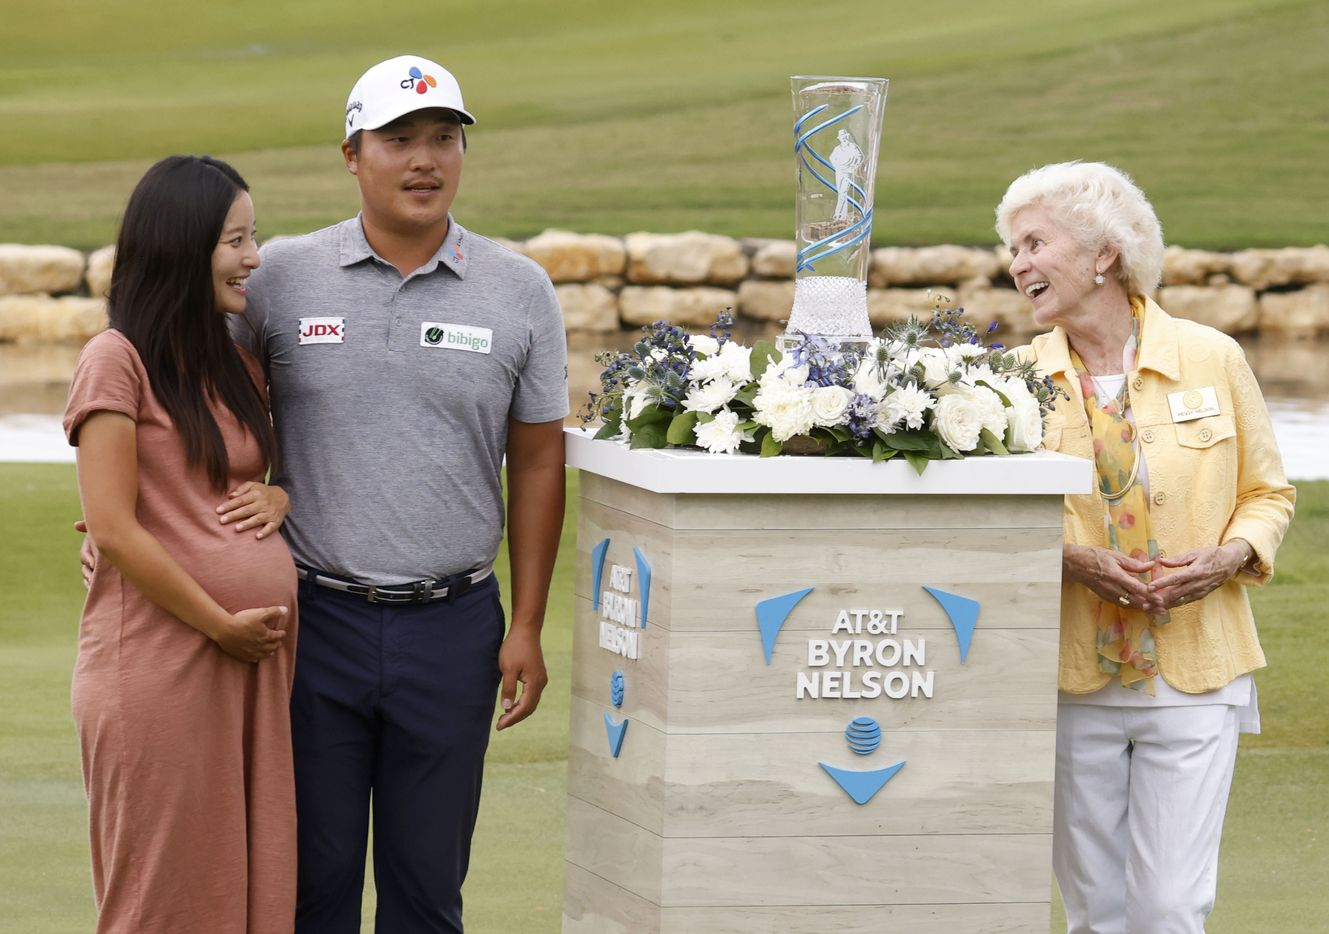 Kyoung-Hoon Lee (center) and his wife Julie (left) with Peggy Nelson (right) during the trophy presentation after winning the AT&T Byron Nelson at TPC Craig Ranch on Saturday, May 16, 2021 in McKinney, Texas. (Vernon Bryant/The Dallas Morning News)